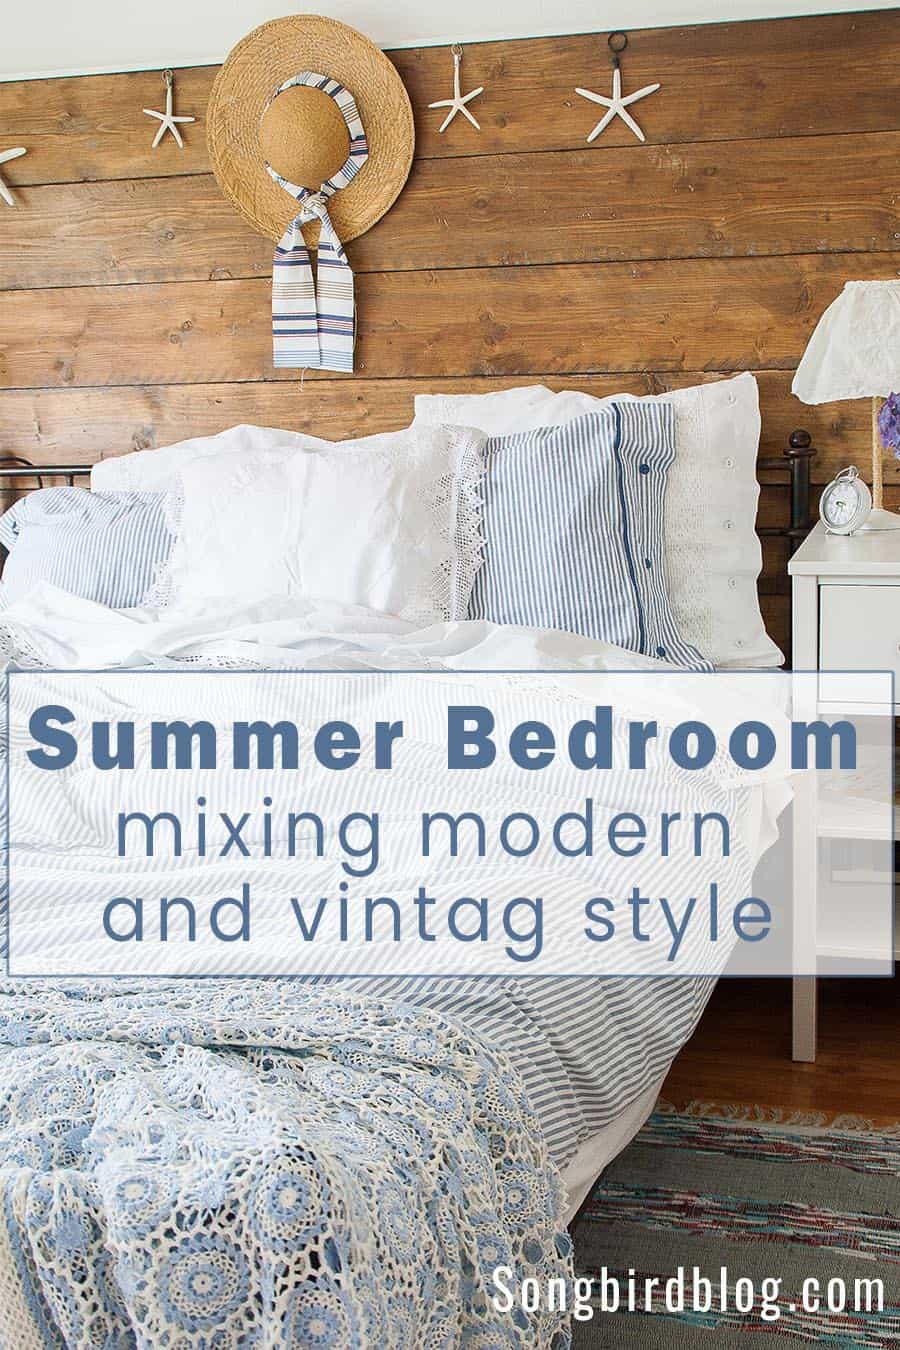 blue and white bedding mix modern and vintage. Vintage crochet bedspread